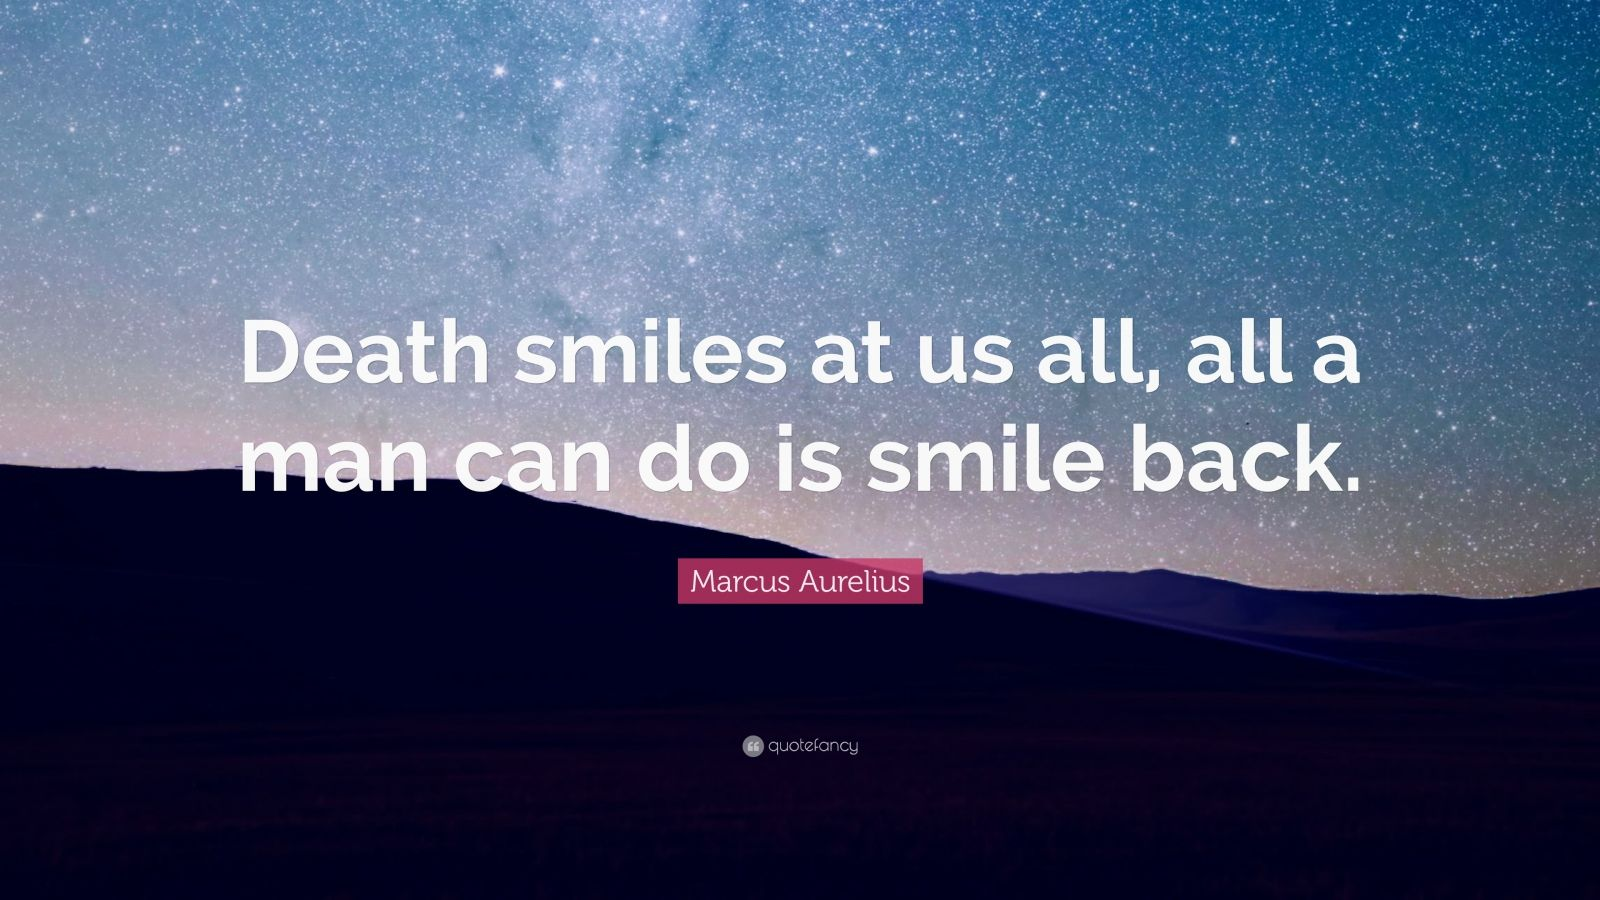 when death smiles at us all [/r/u_emilsgnik] death smiles at us all all a man can do is smile back --marcus aurelius [/r/u_emilsgnik] death smiles at us all all a man can do is smile back.